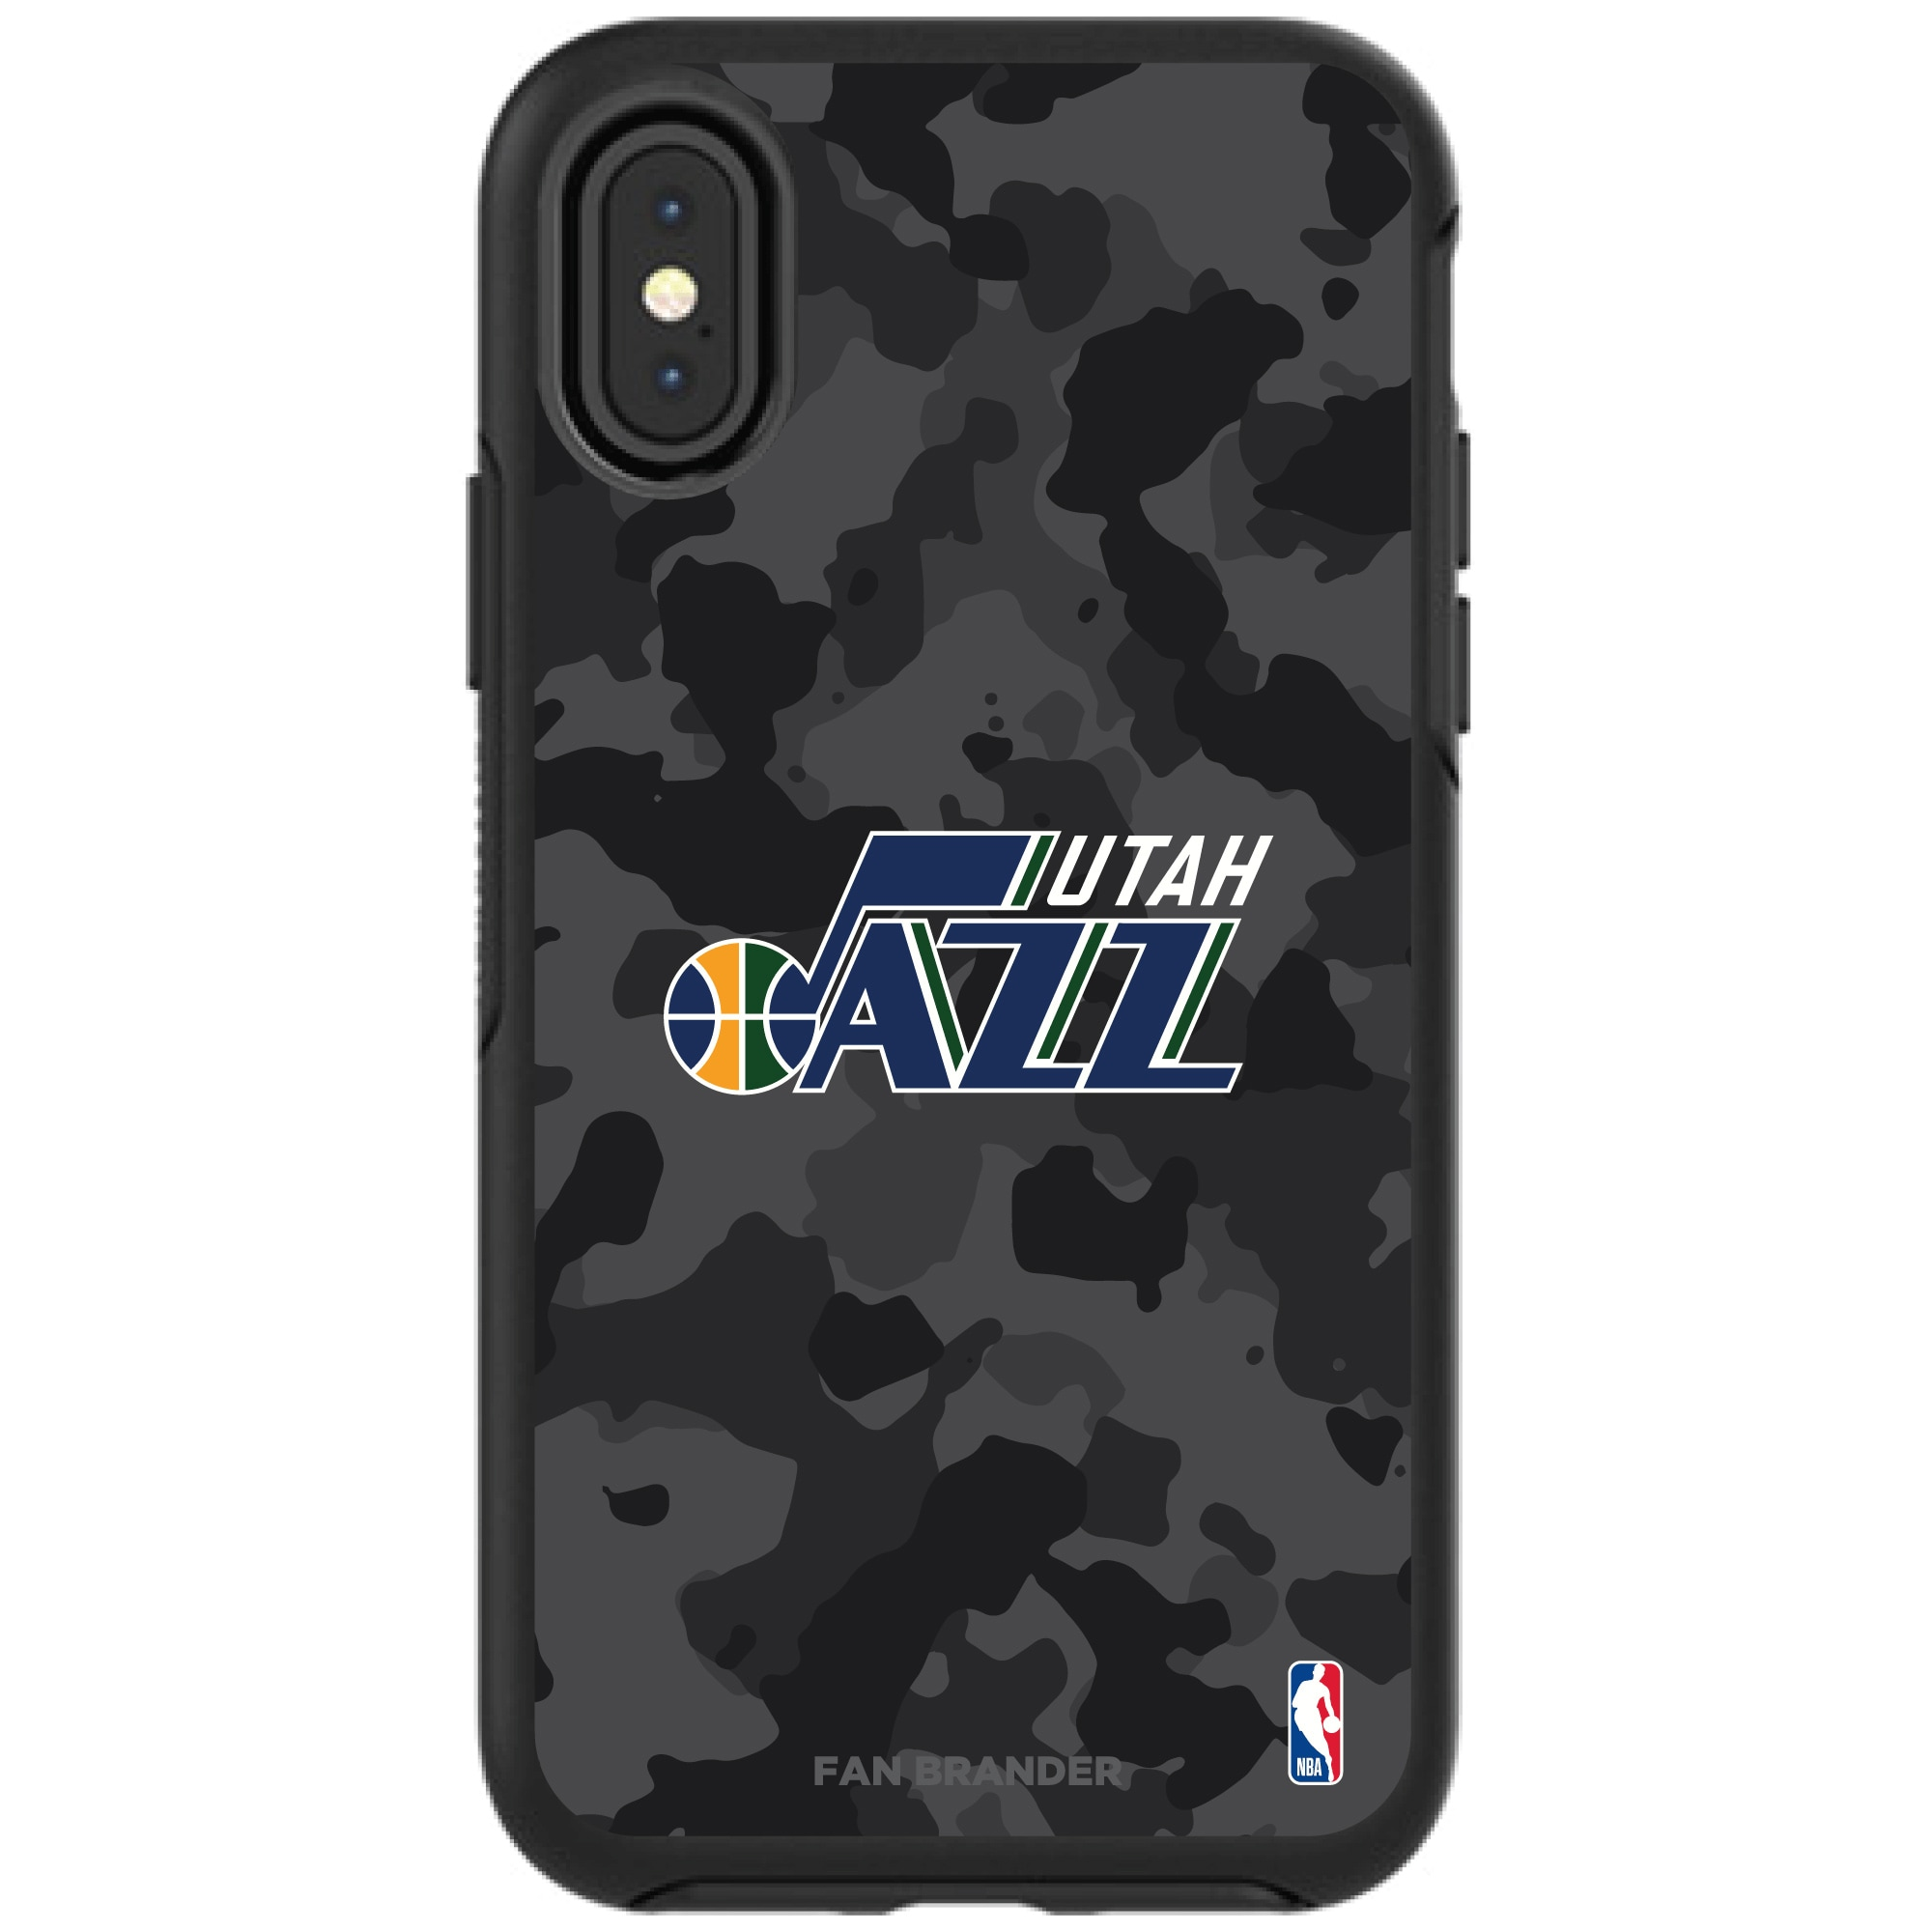 Utah Jazz OtterBox Urban Camo iPhone Case